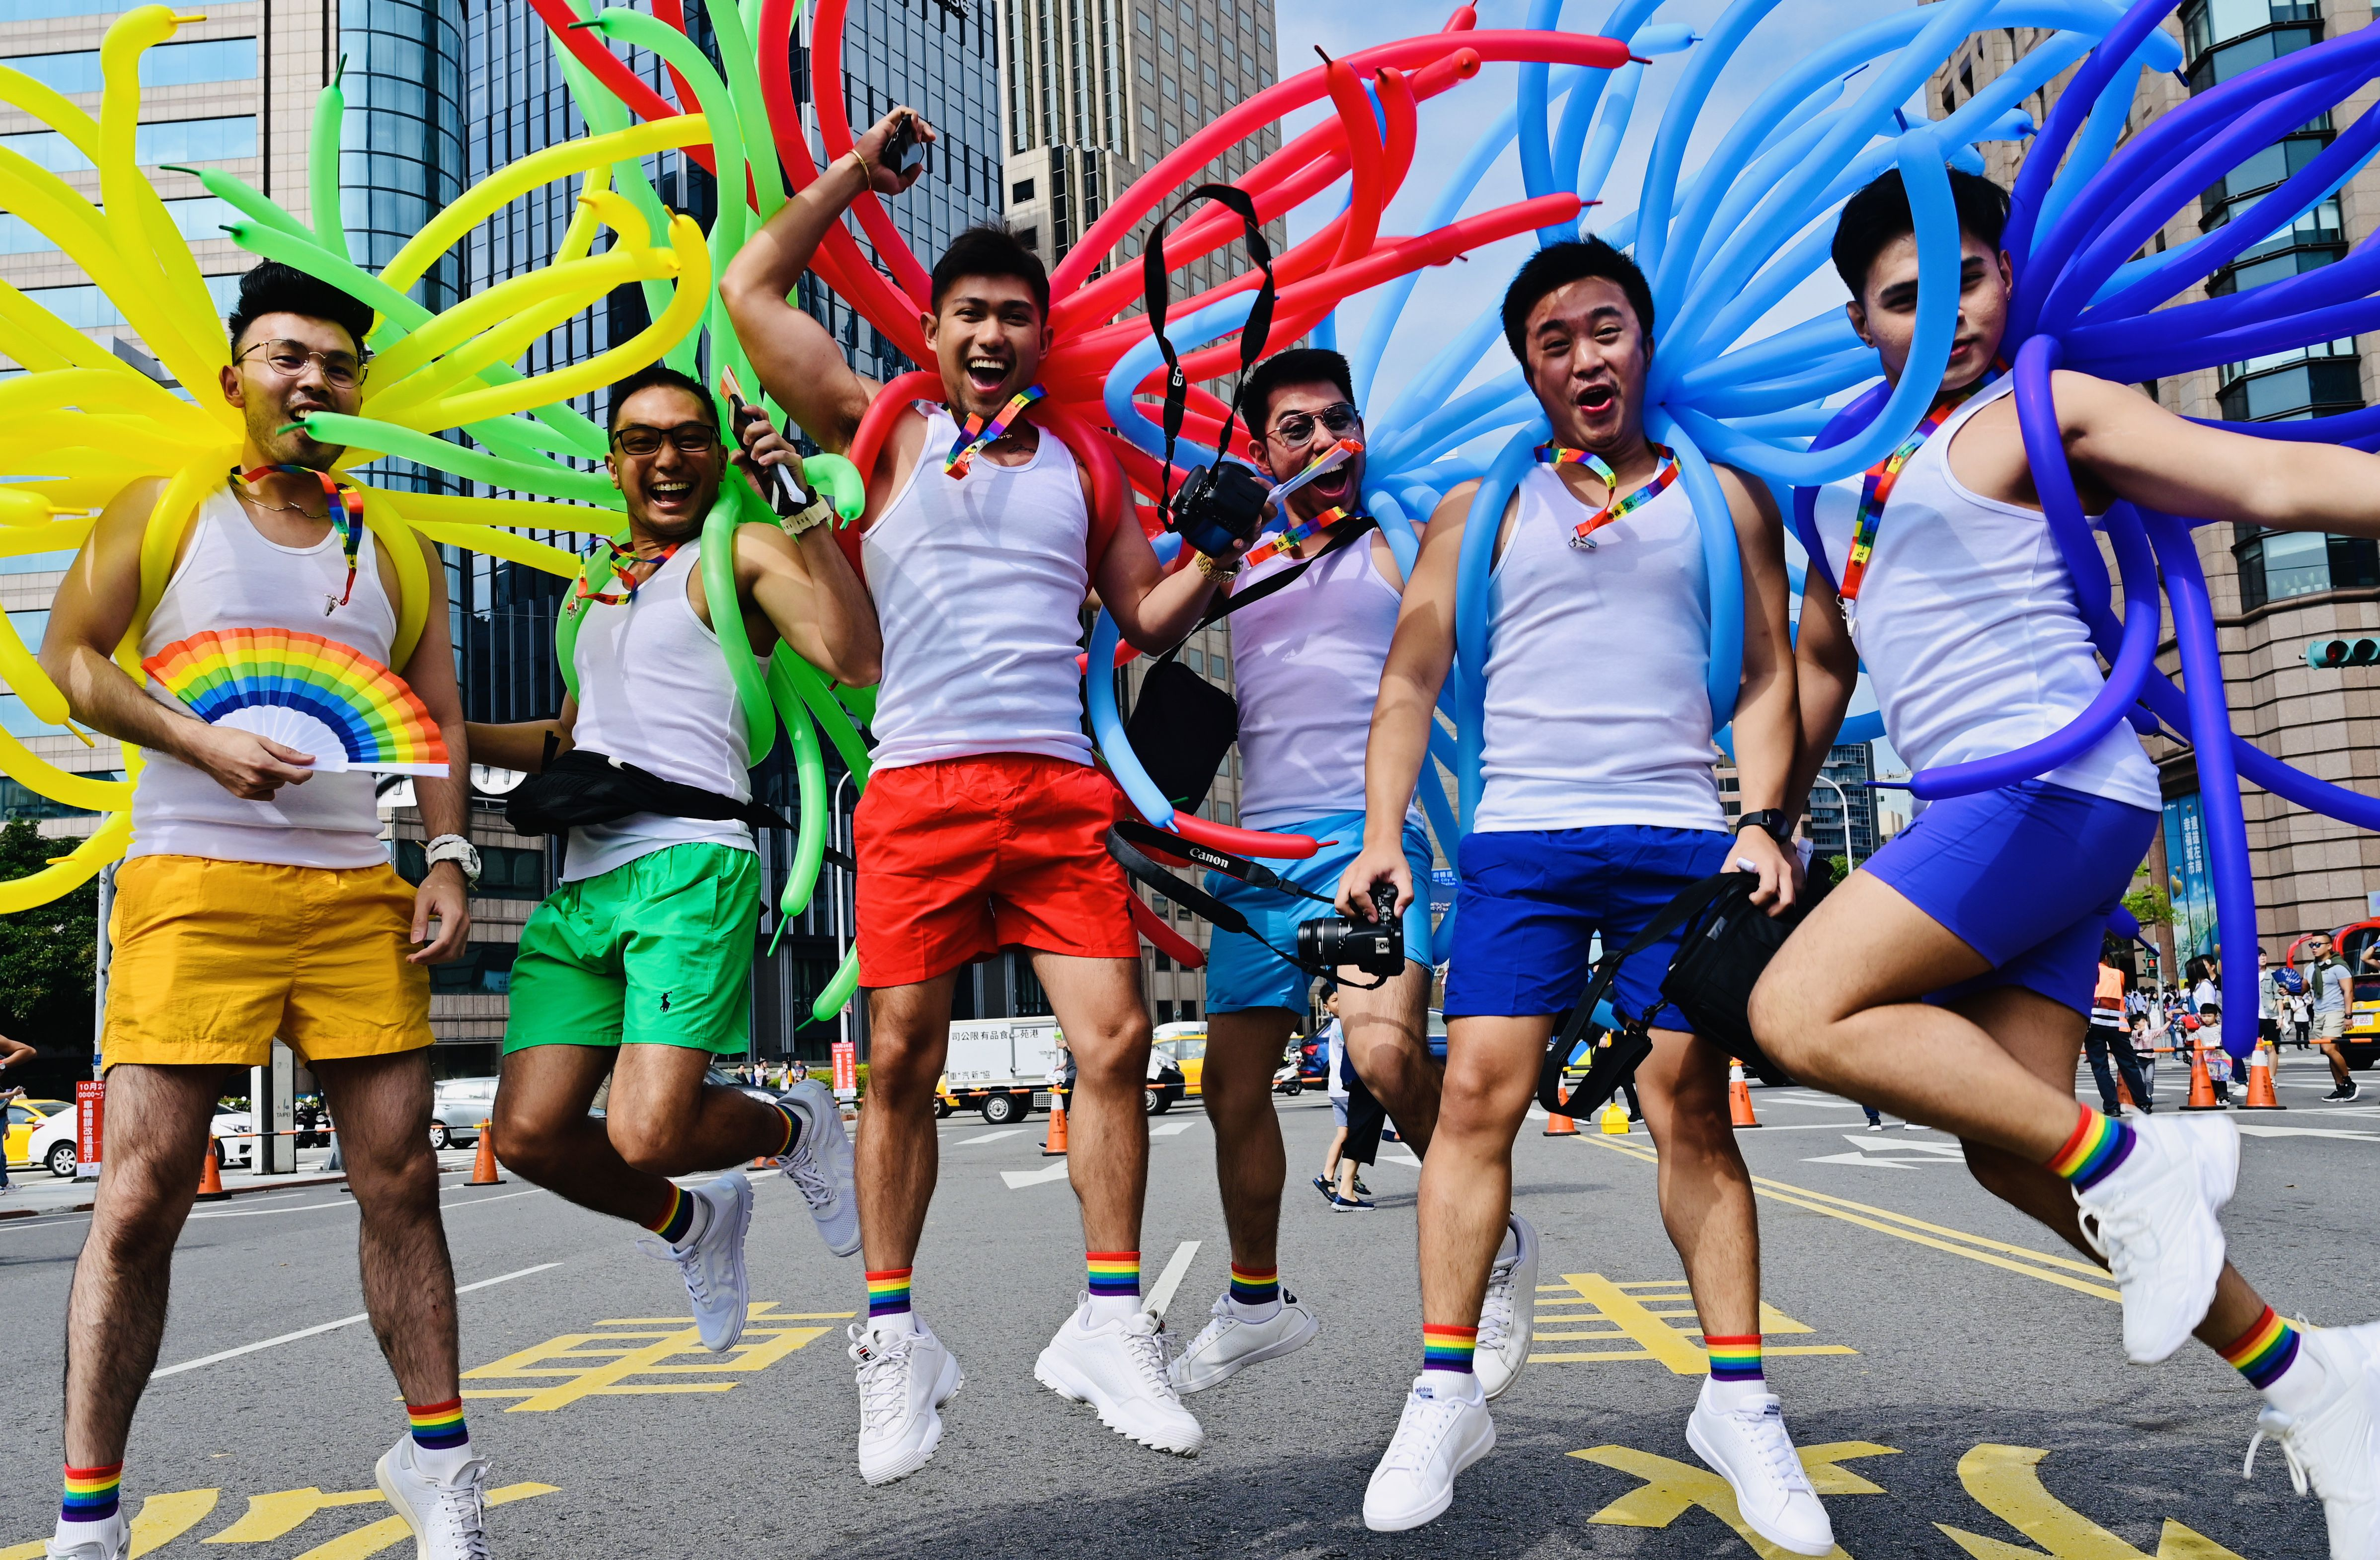 A group of men in white vests and shorts. Each holds balloons in a different colour of the rainbow.